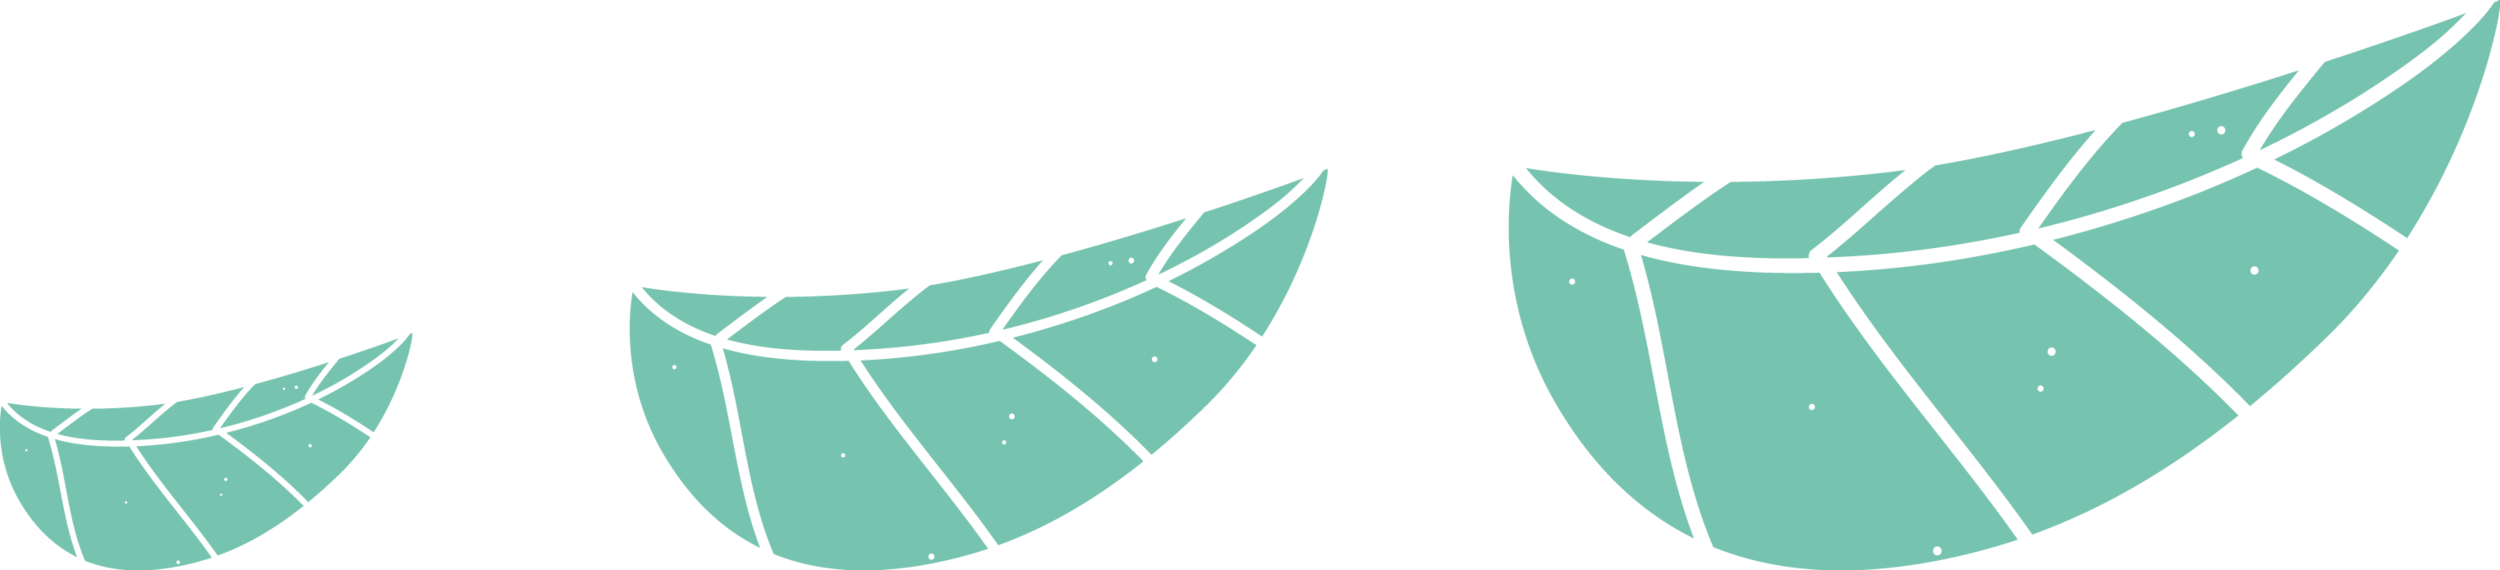 bird-wing-element.png